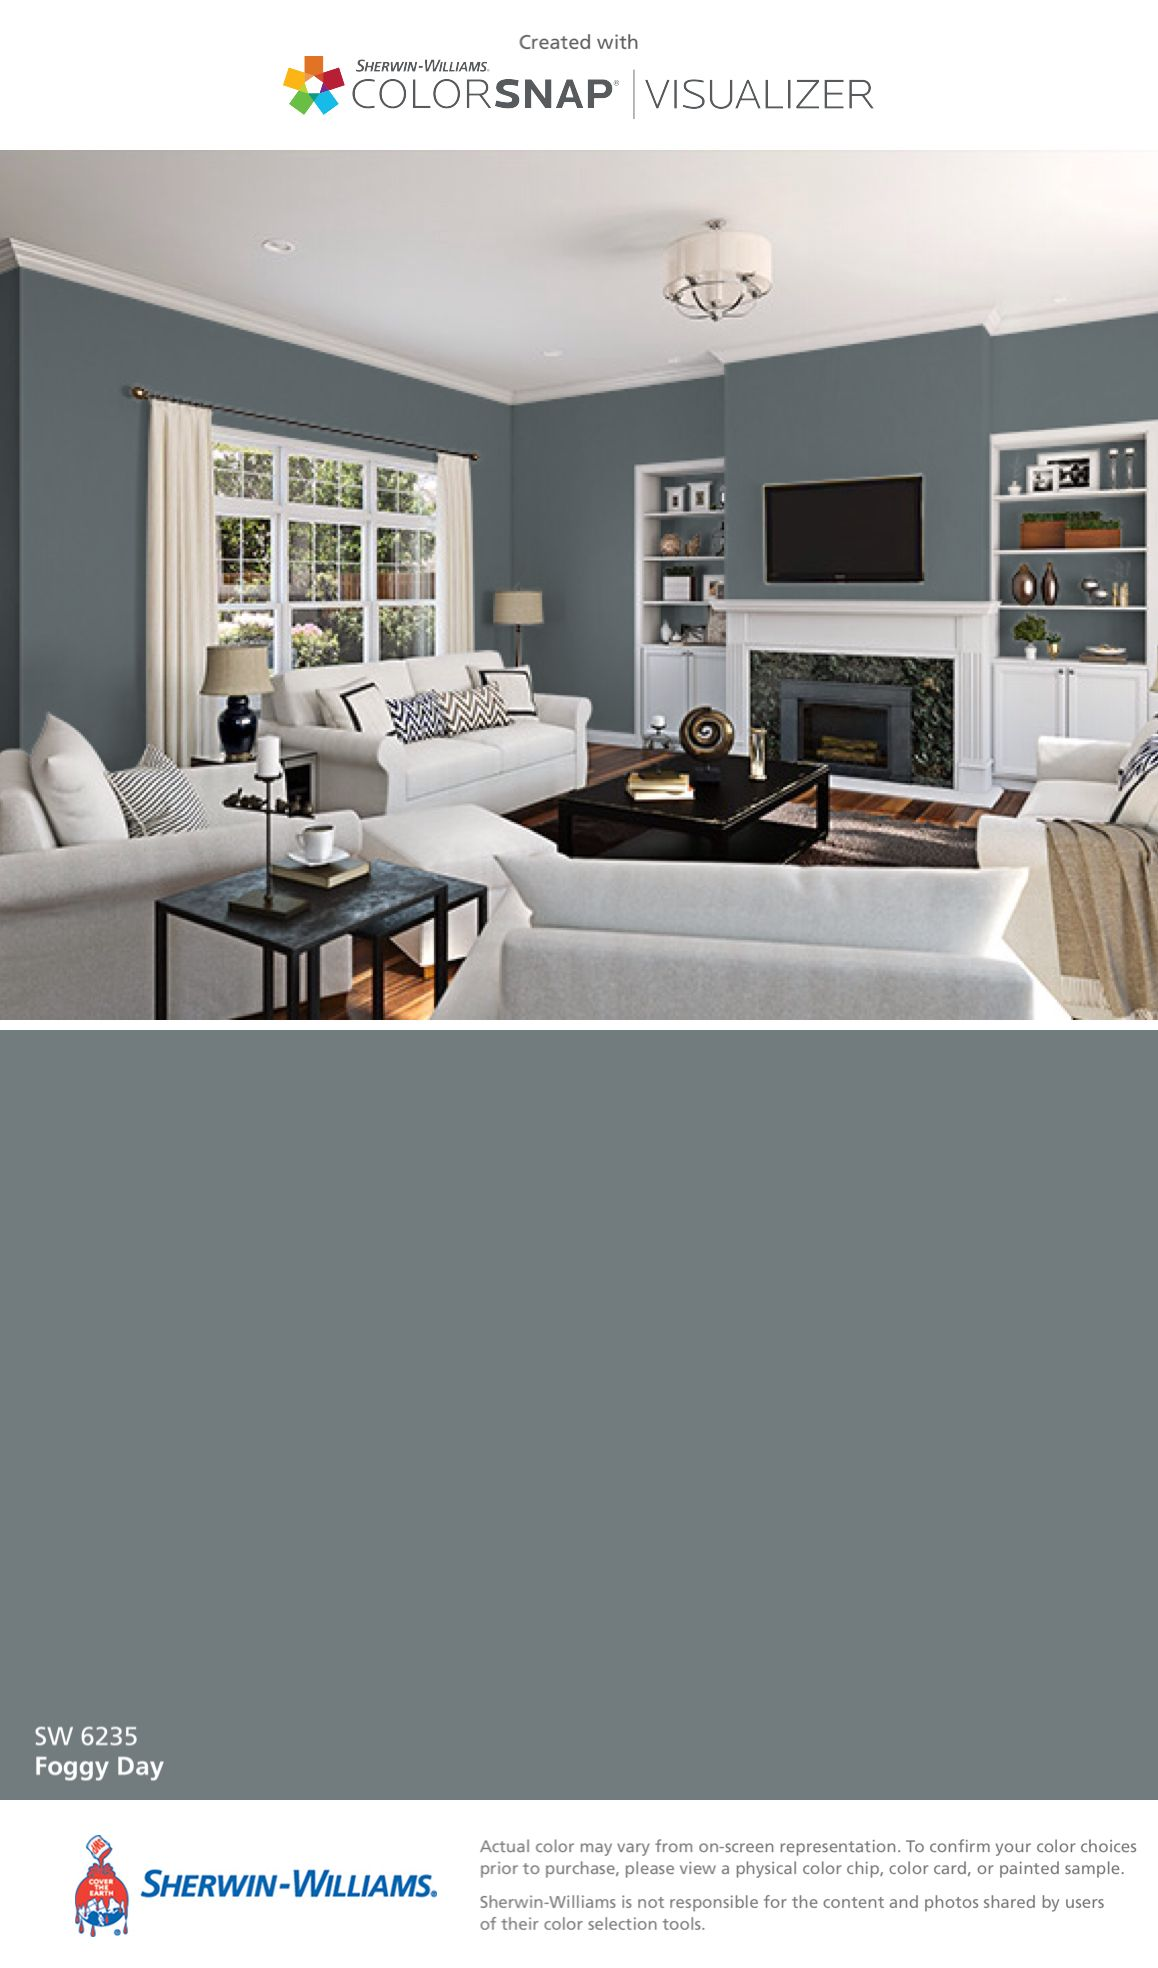 I Found This Color With Colorsnap Visualizer For Iphone By Sherwin Williams Foggy Day Sw 6235